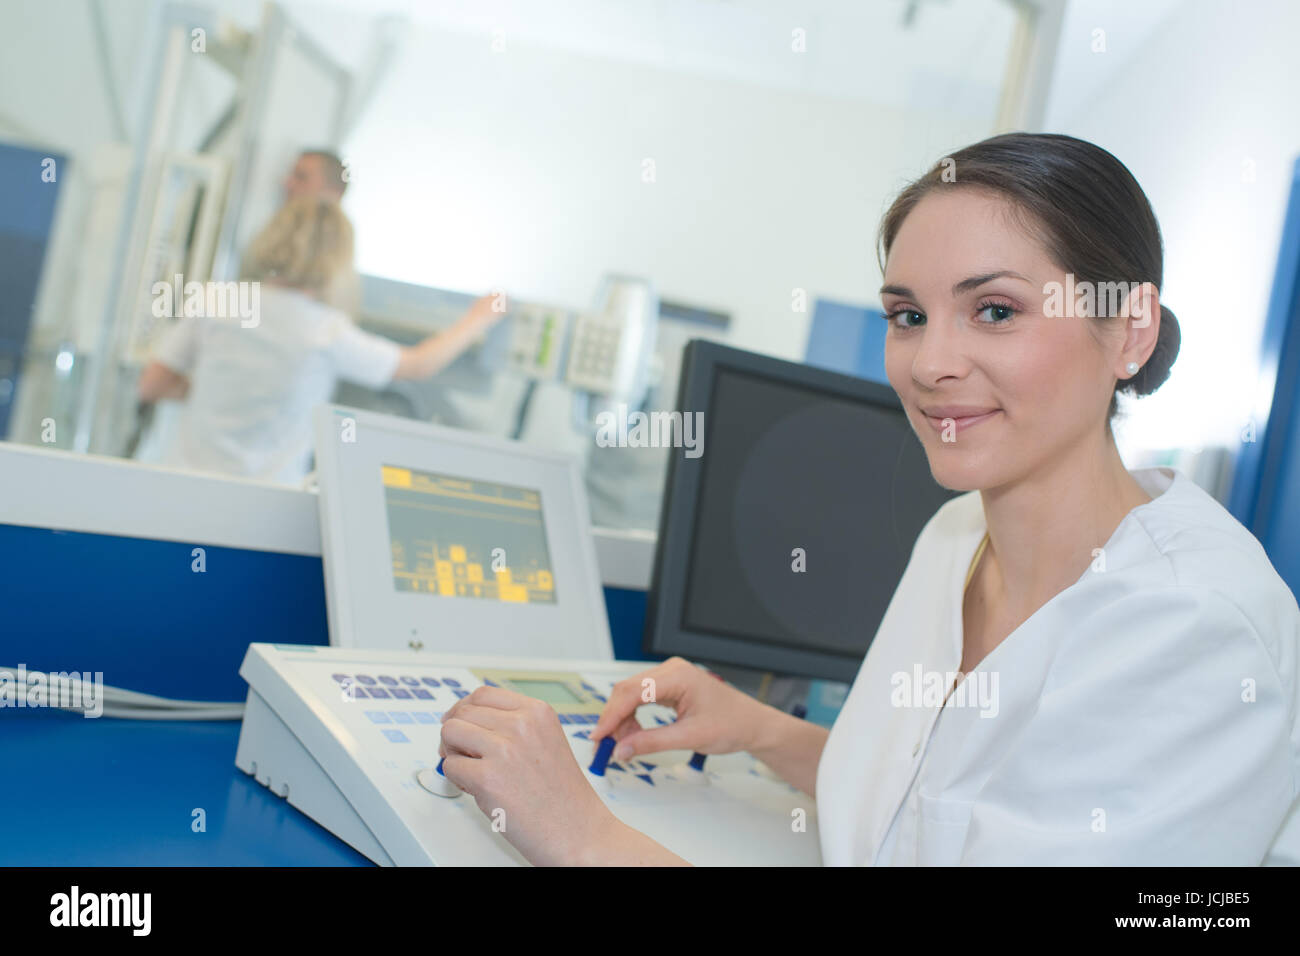 computed tomography or mri scanner test analysis - Stock Image